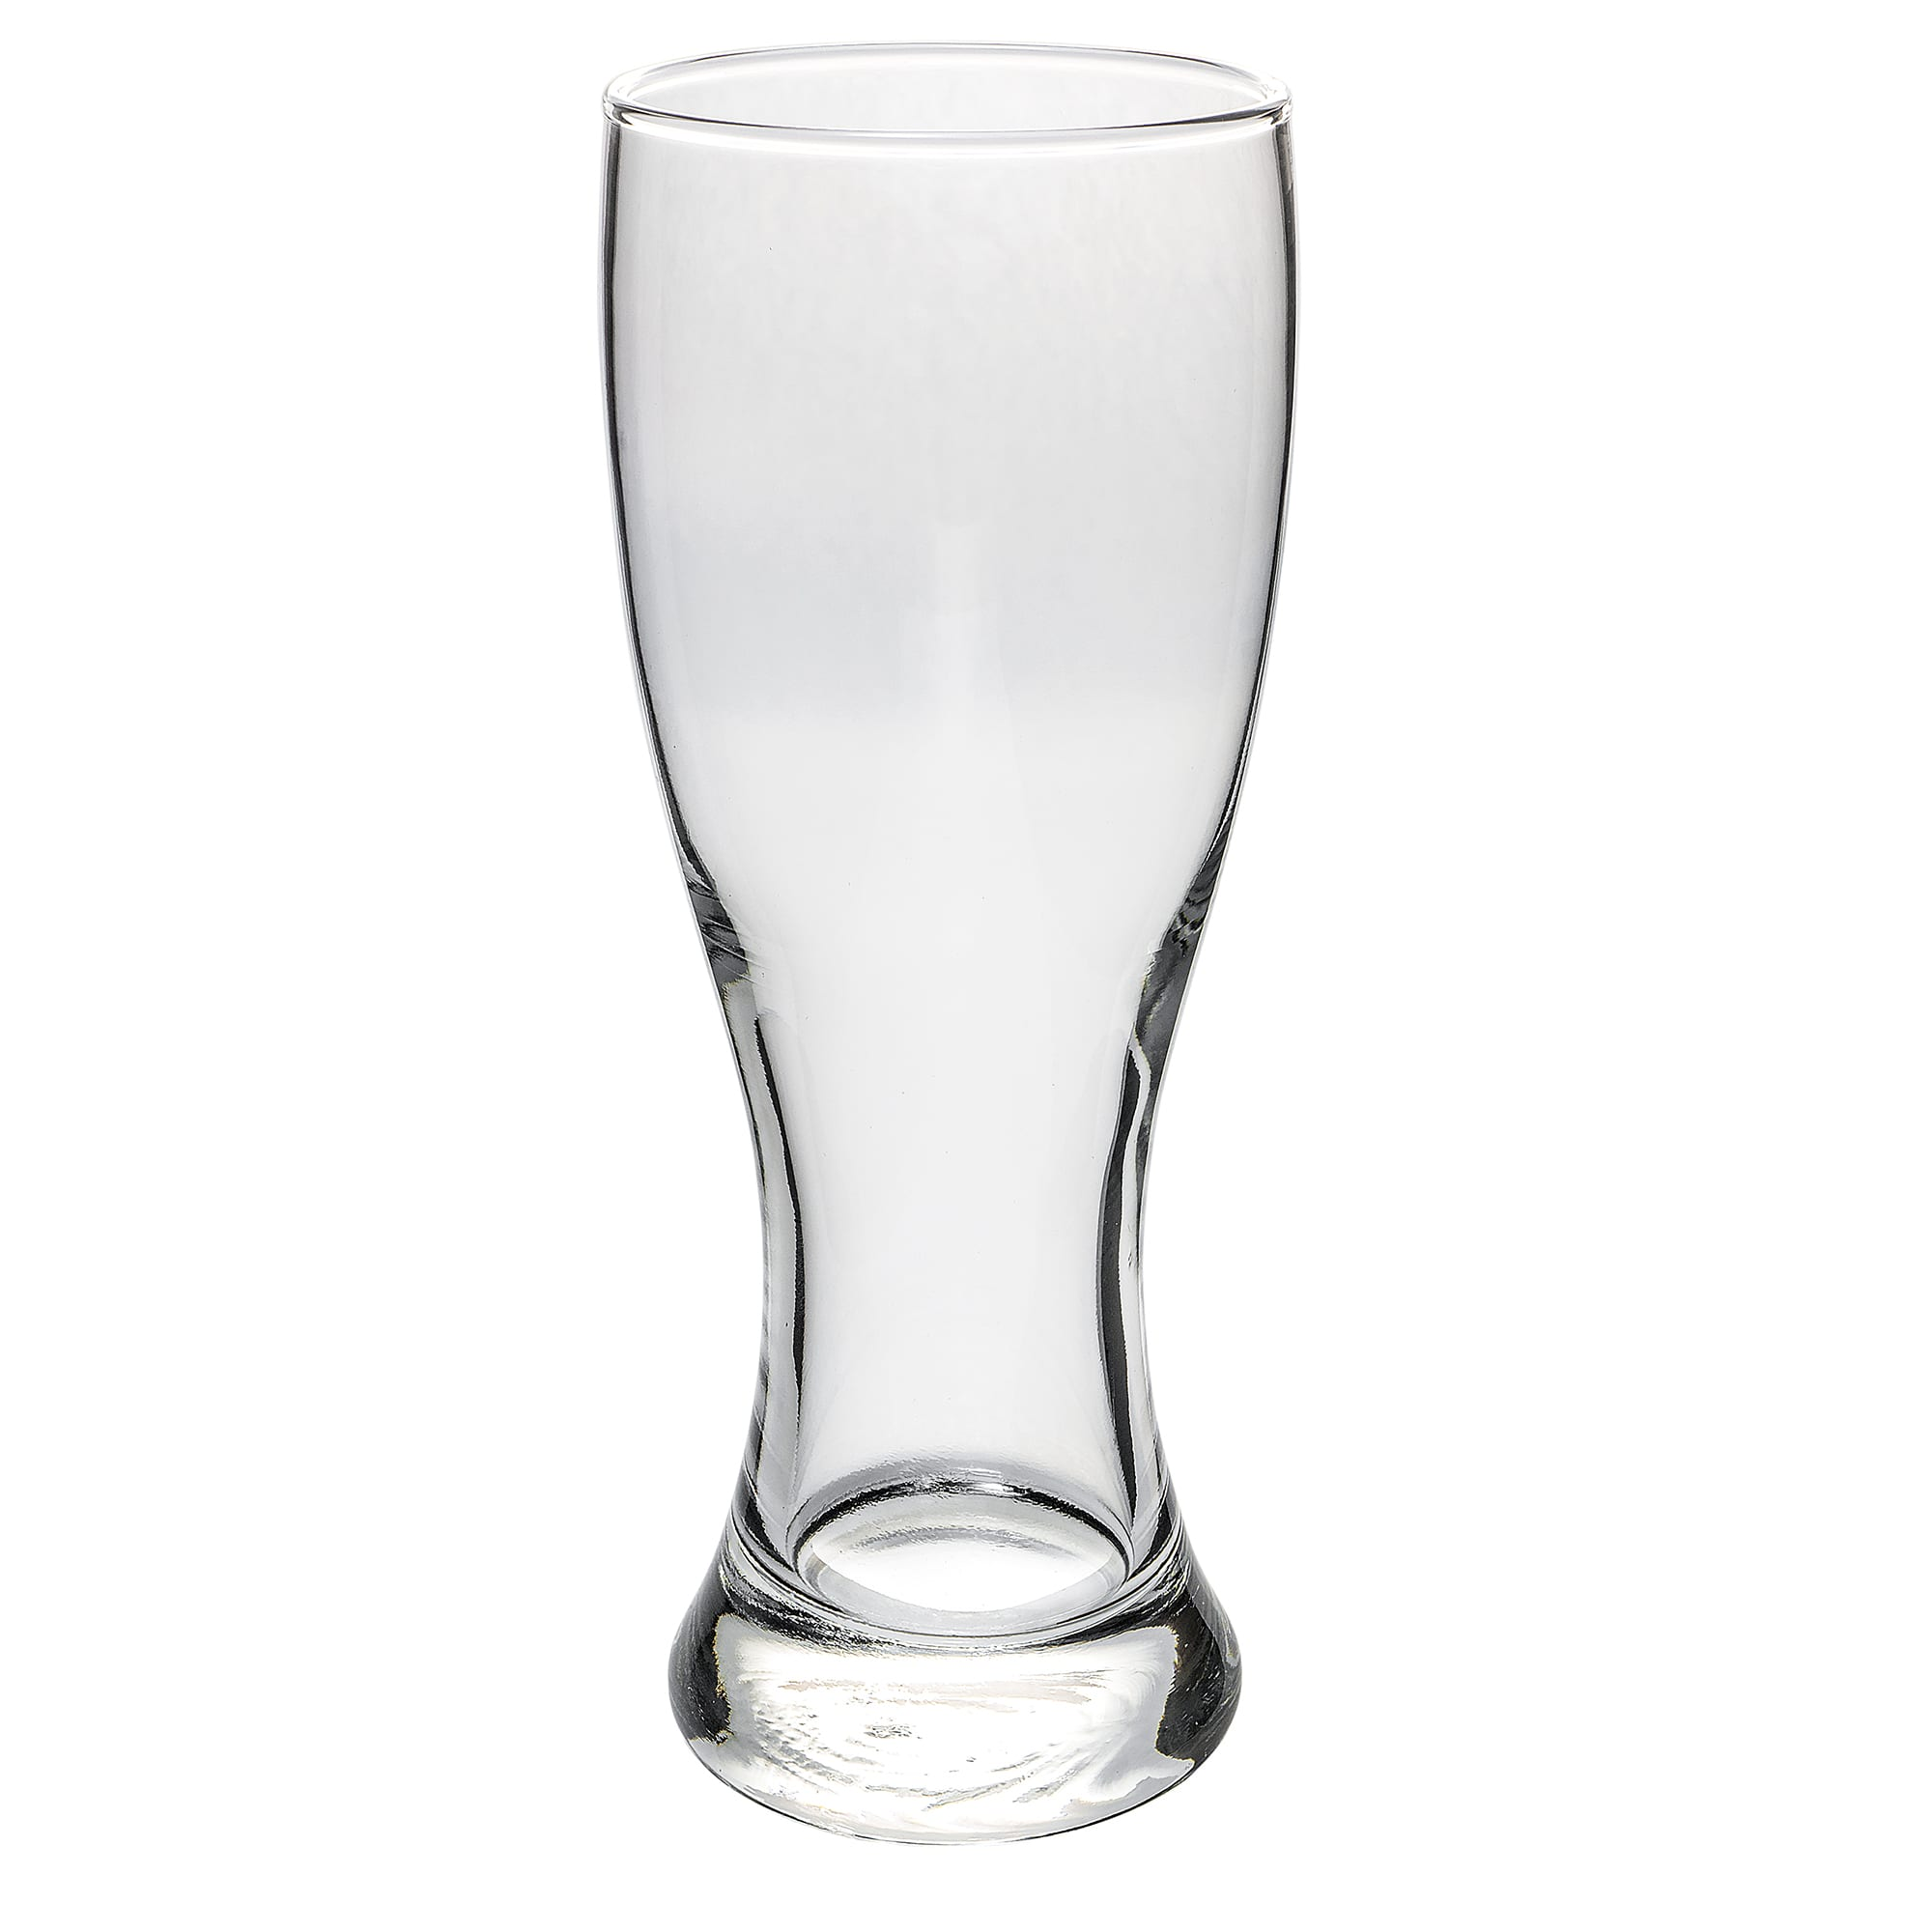 Libbey 1629 20-oz Giant Beer Glass